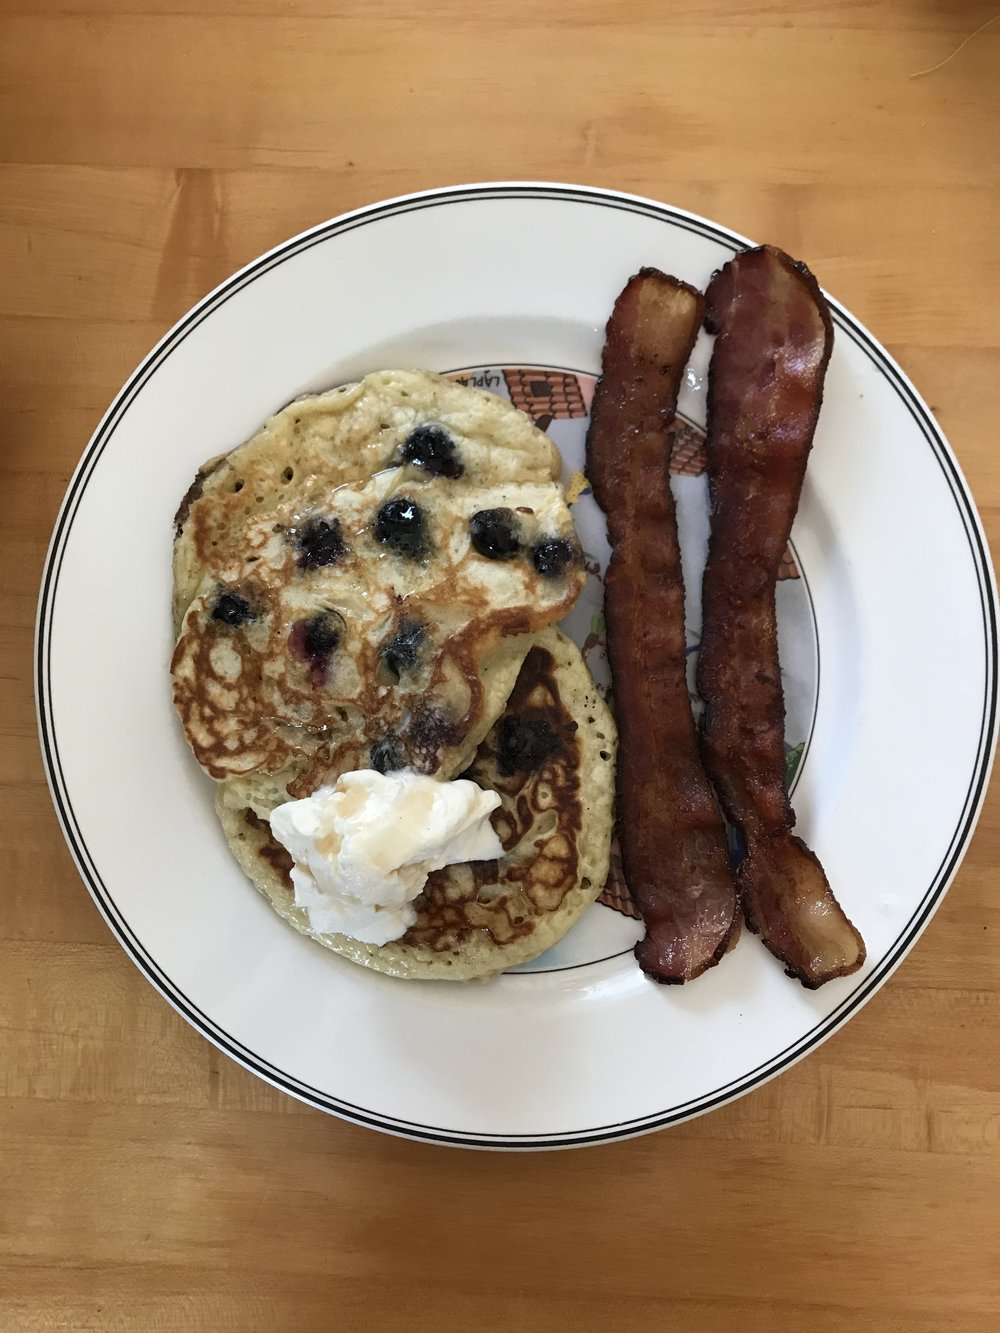 Woke up on the 4th of July to the smell of Homemade blueberry pancakes and bacon. Excited to devour this breakfast, not so excited for how I'm going to look in my bathing suit later on in the day.